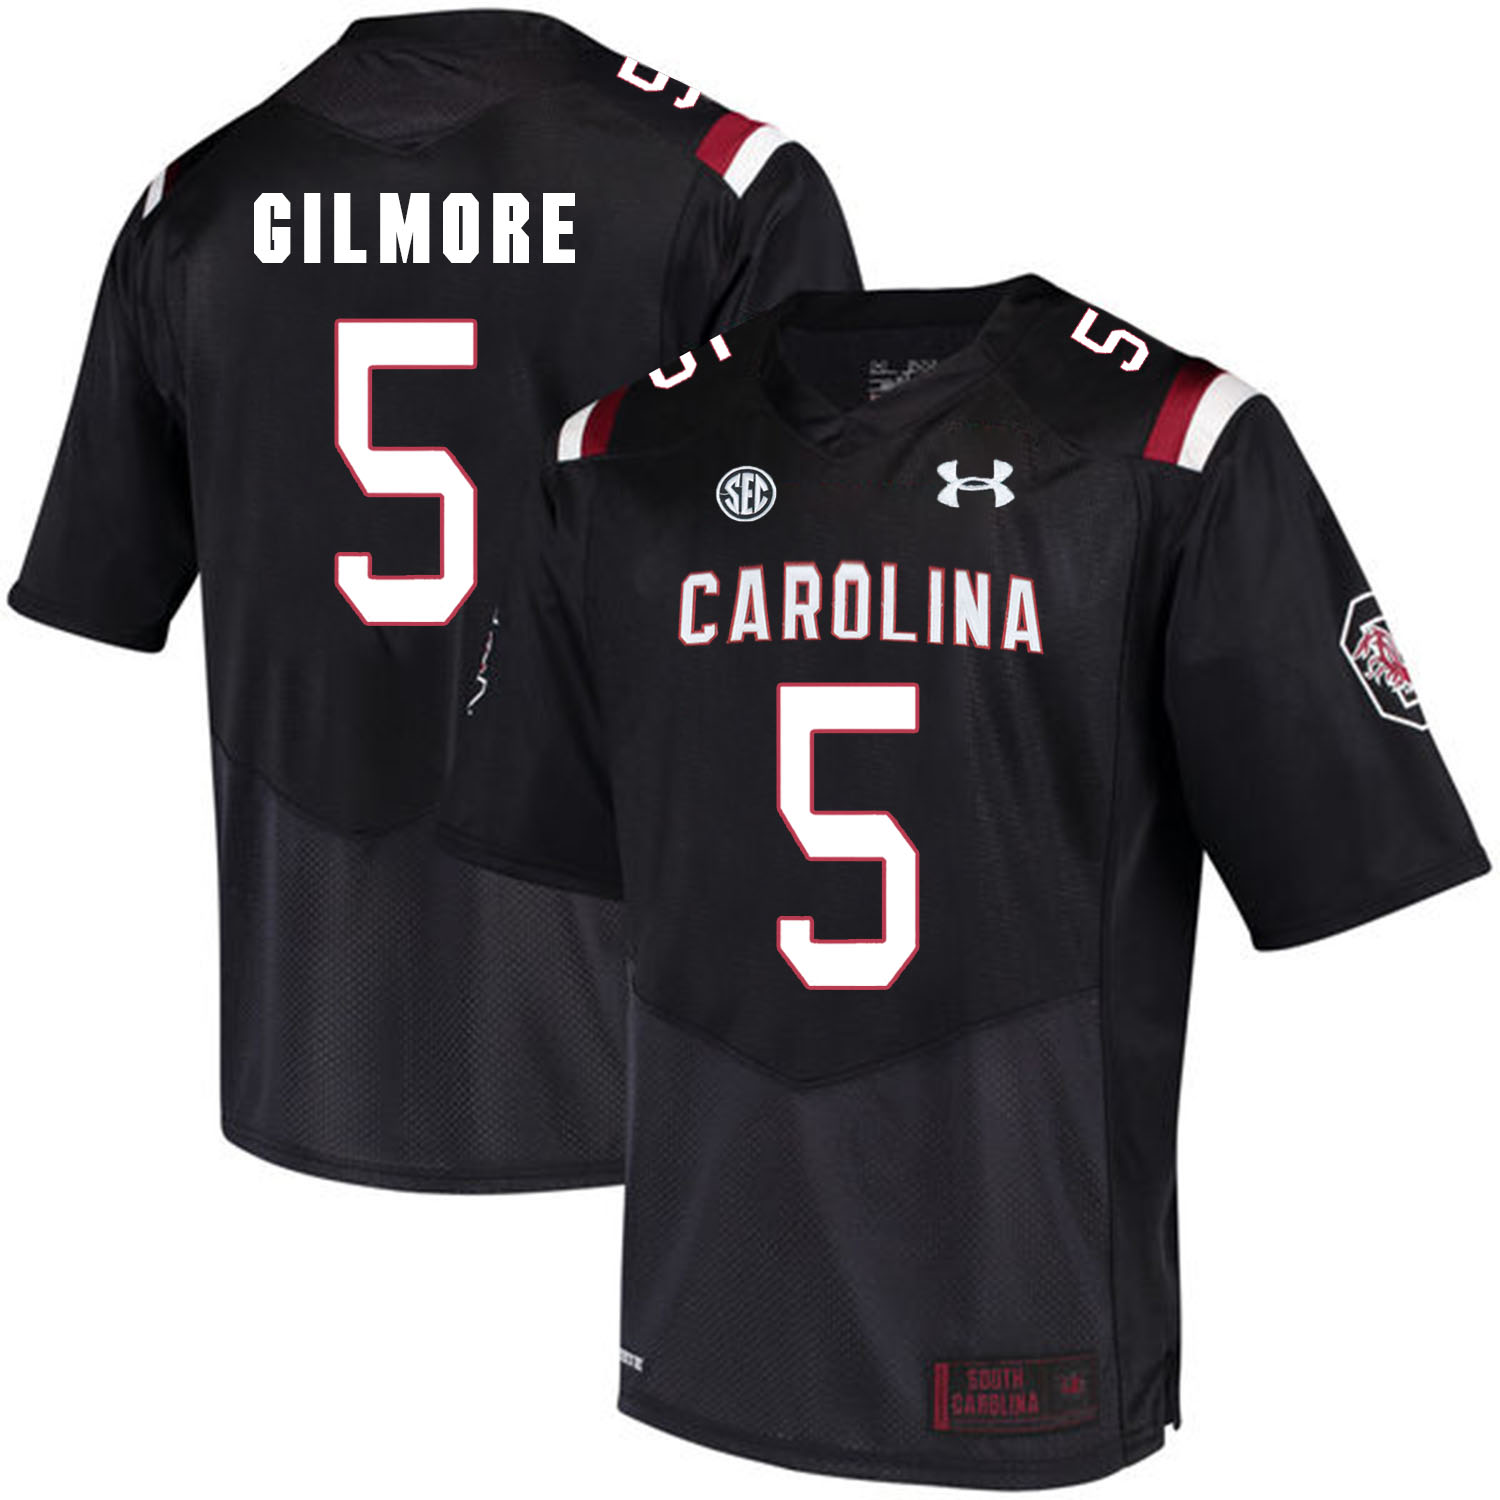 South Carolina Gamecocks 5 Stephon Gilmore Black College Football Jersey